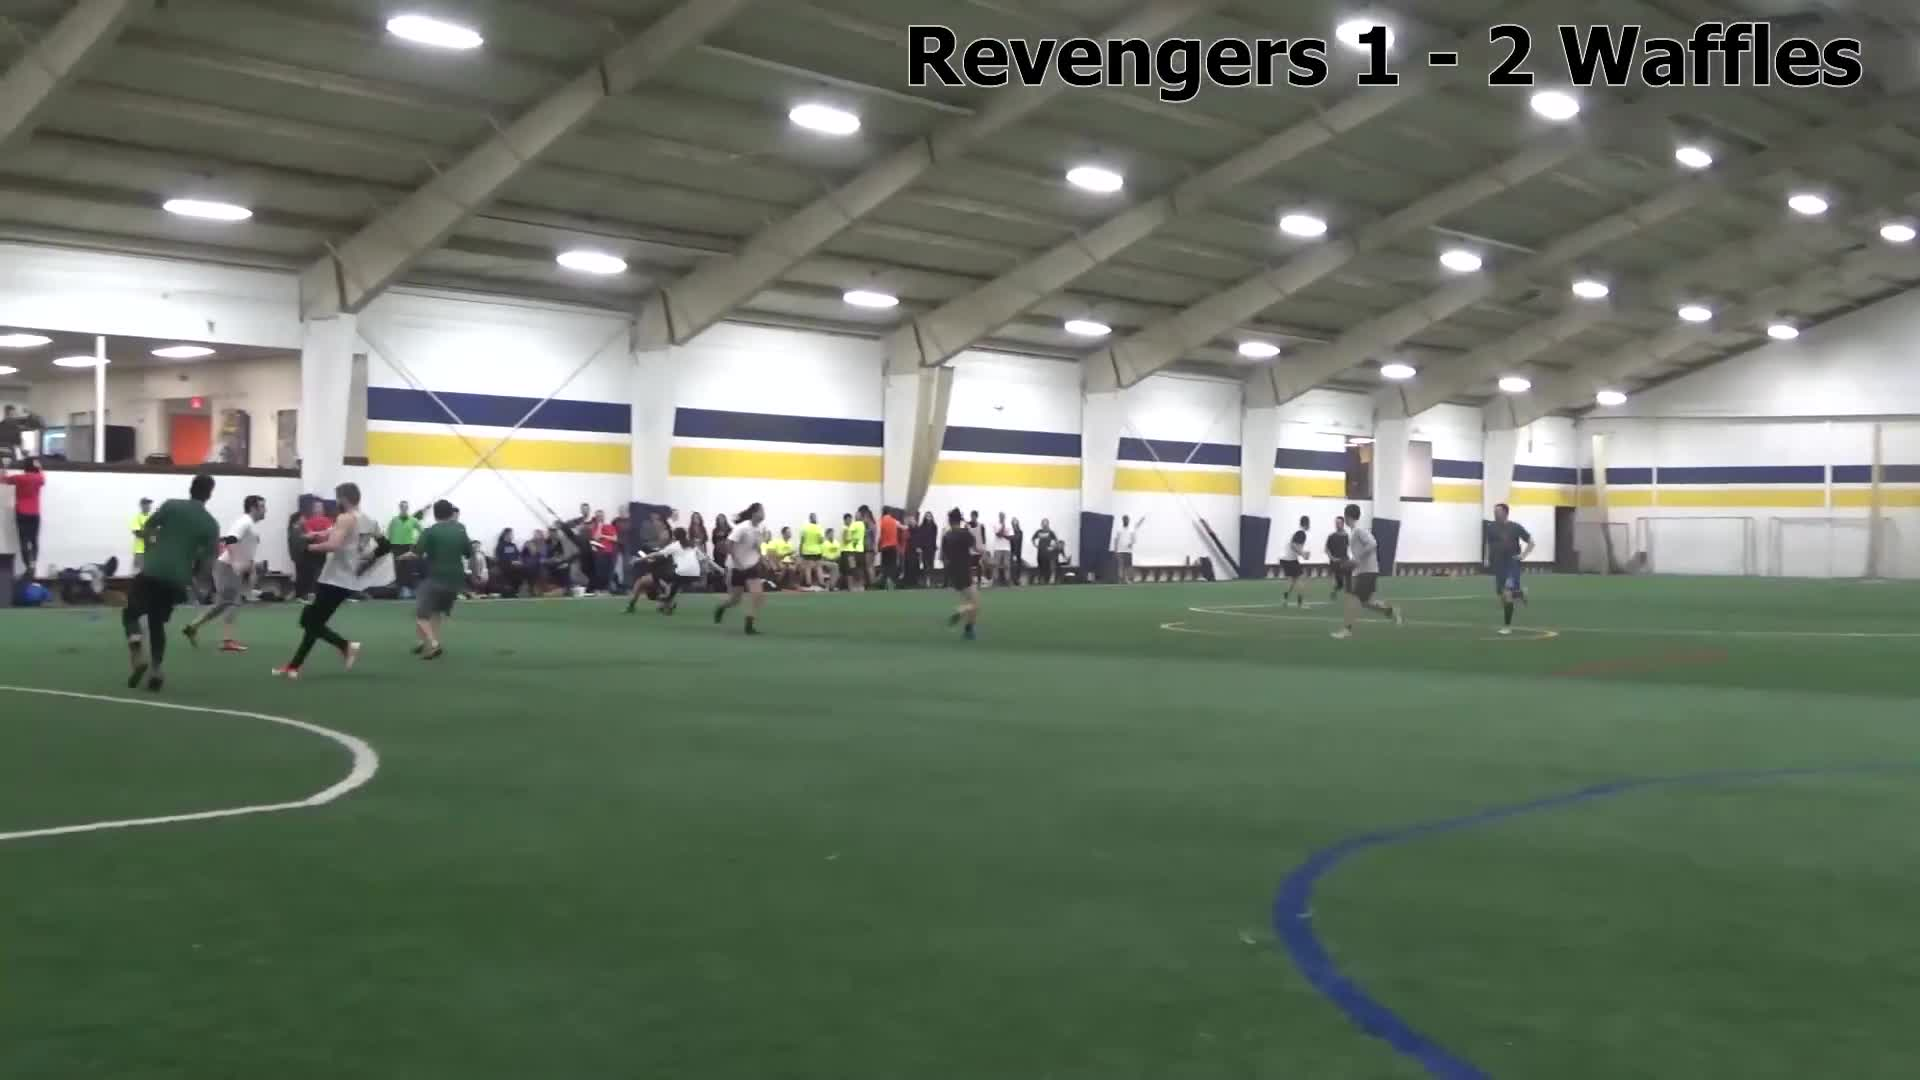 Cleveland Ultimate, Sports, cathy gets caught not orbited correctly, wonyoung good acceleration for the score GIFs